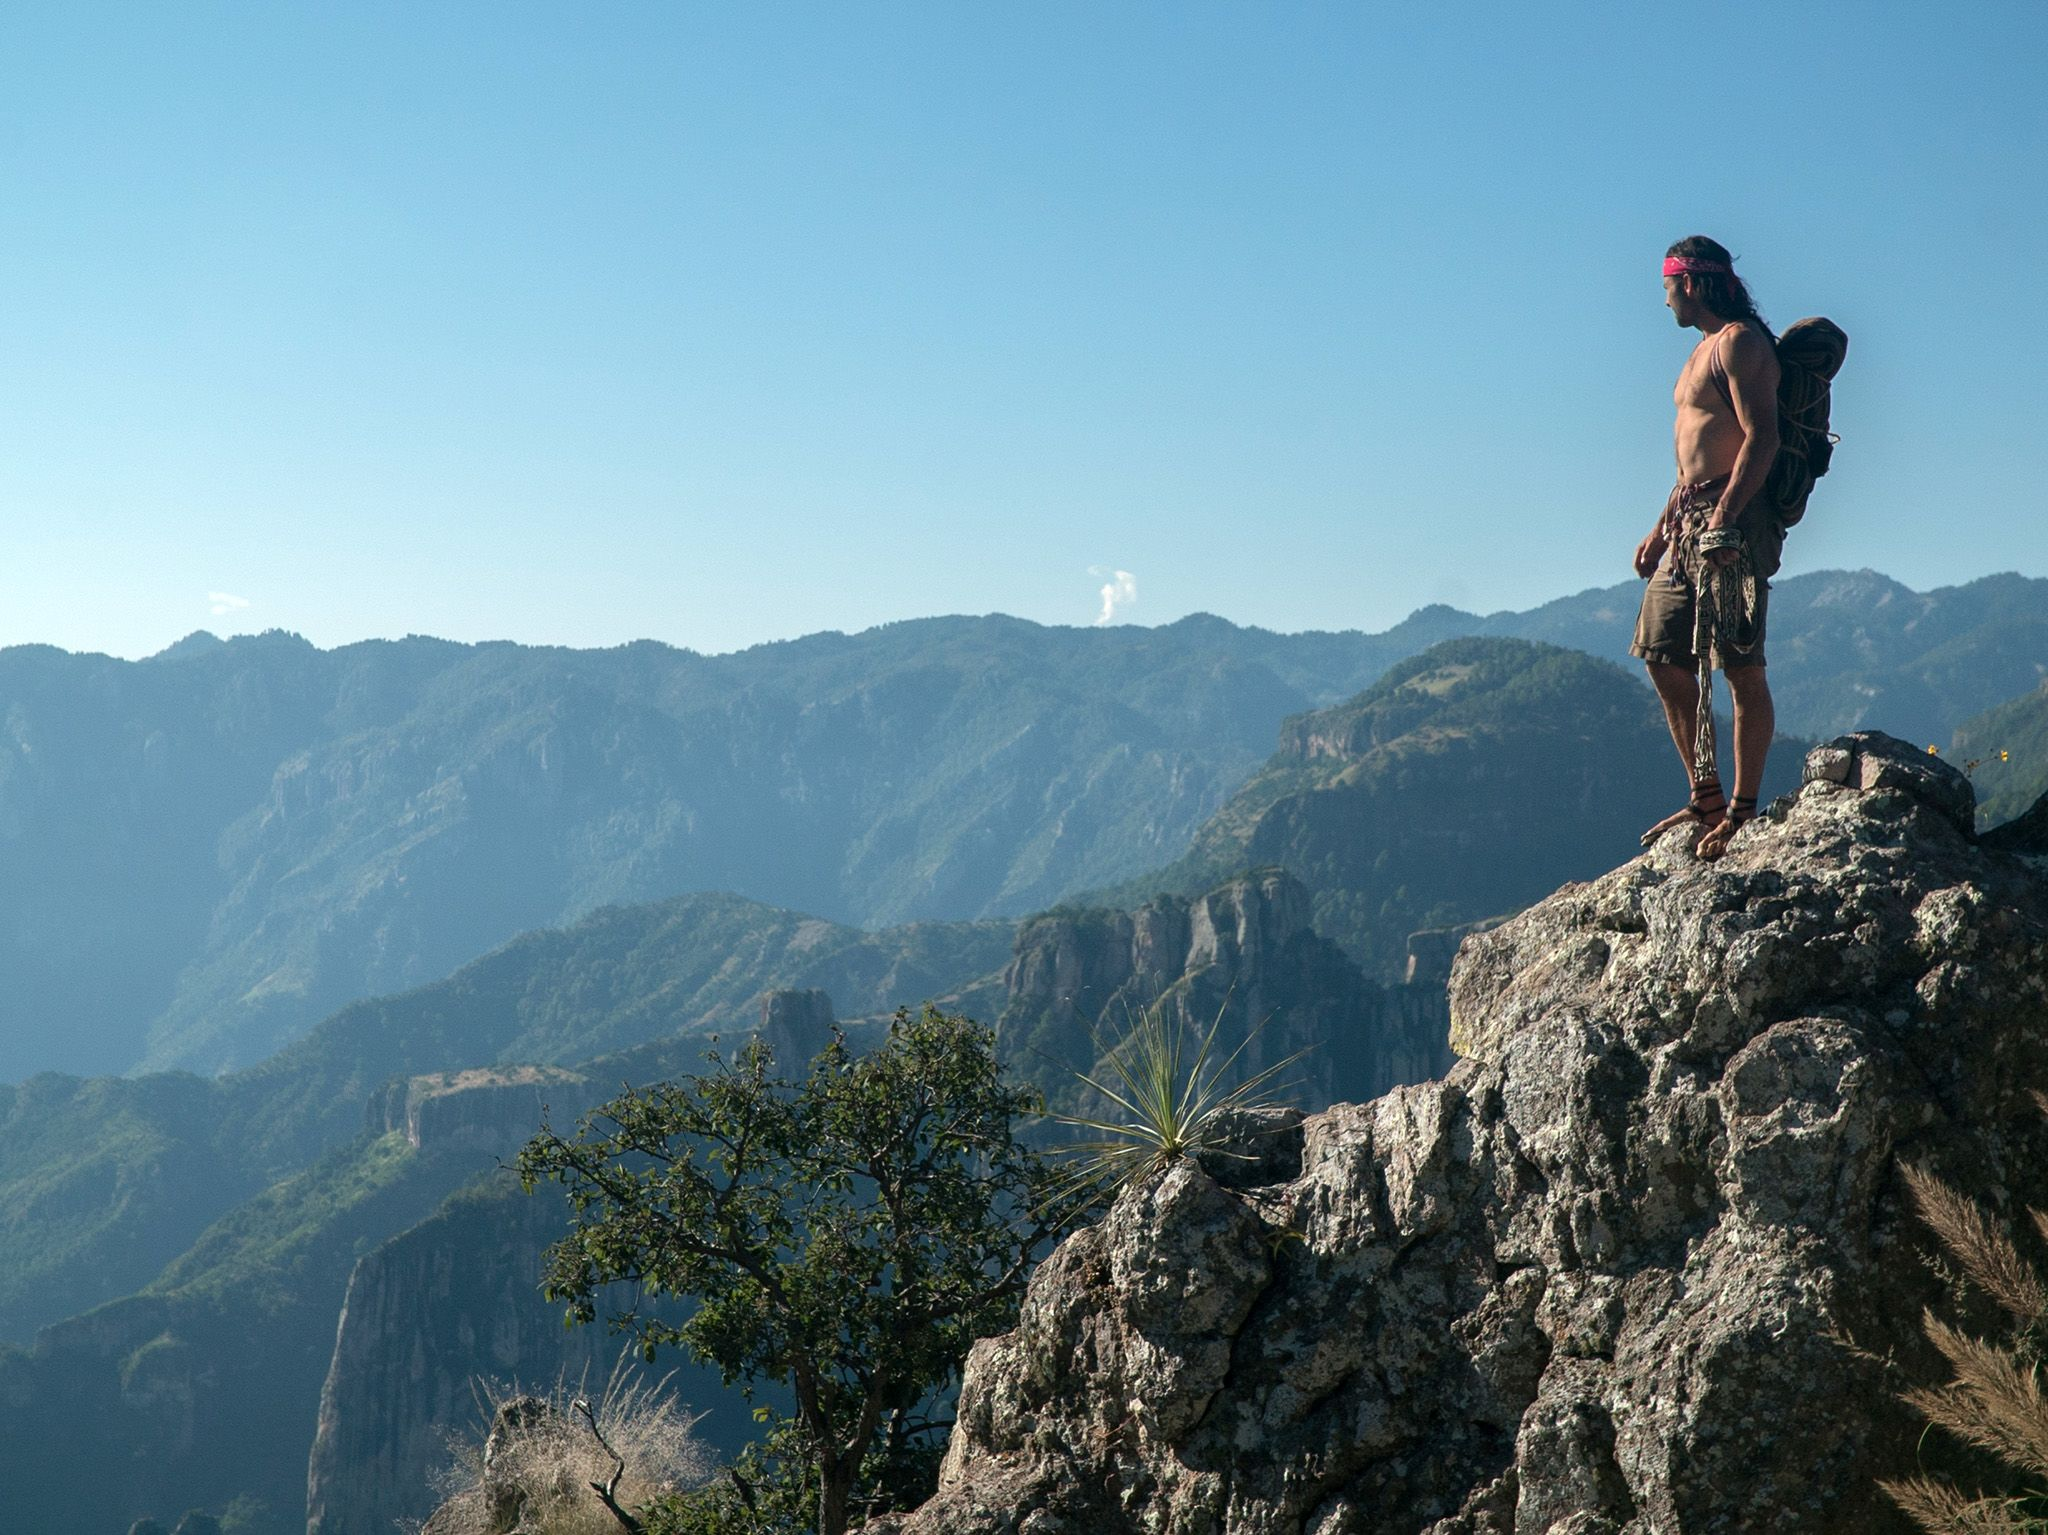 Copper Canyon, Mexico:  Hazen on Copper Canyon. This image is from Primal Survivor. [Photo of the day - December 2018]